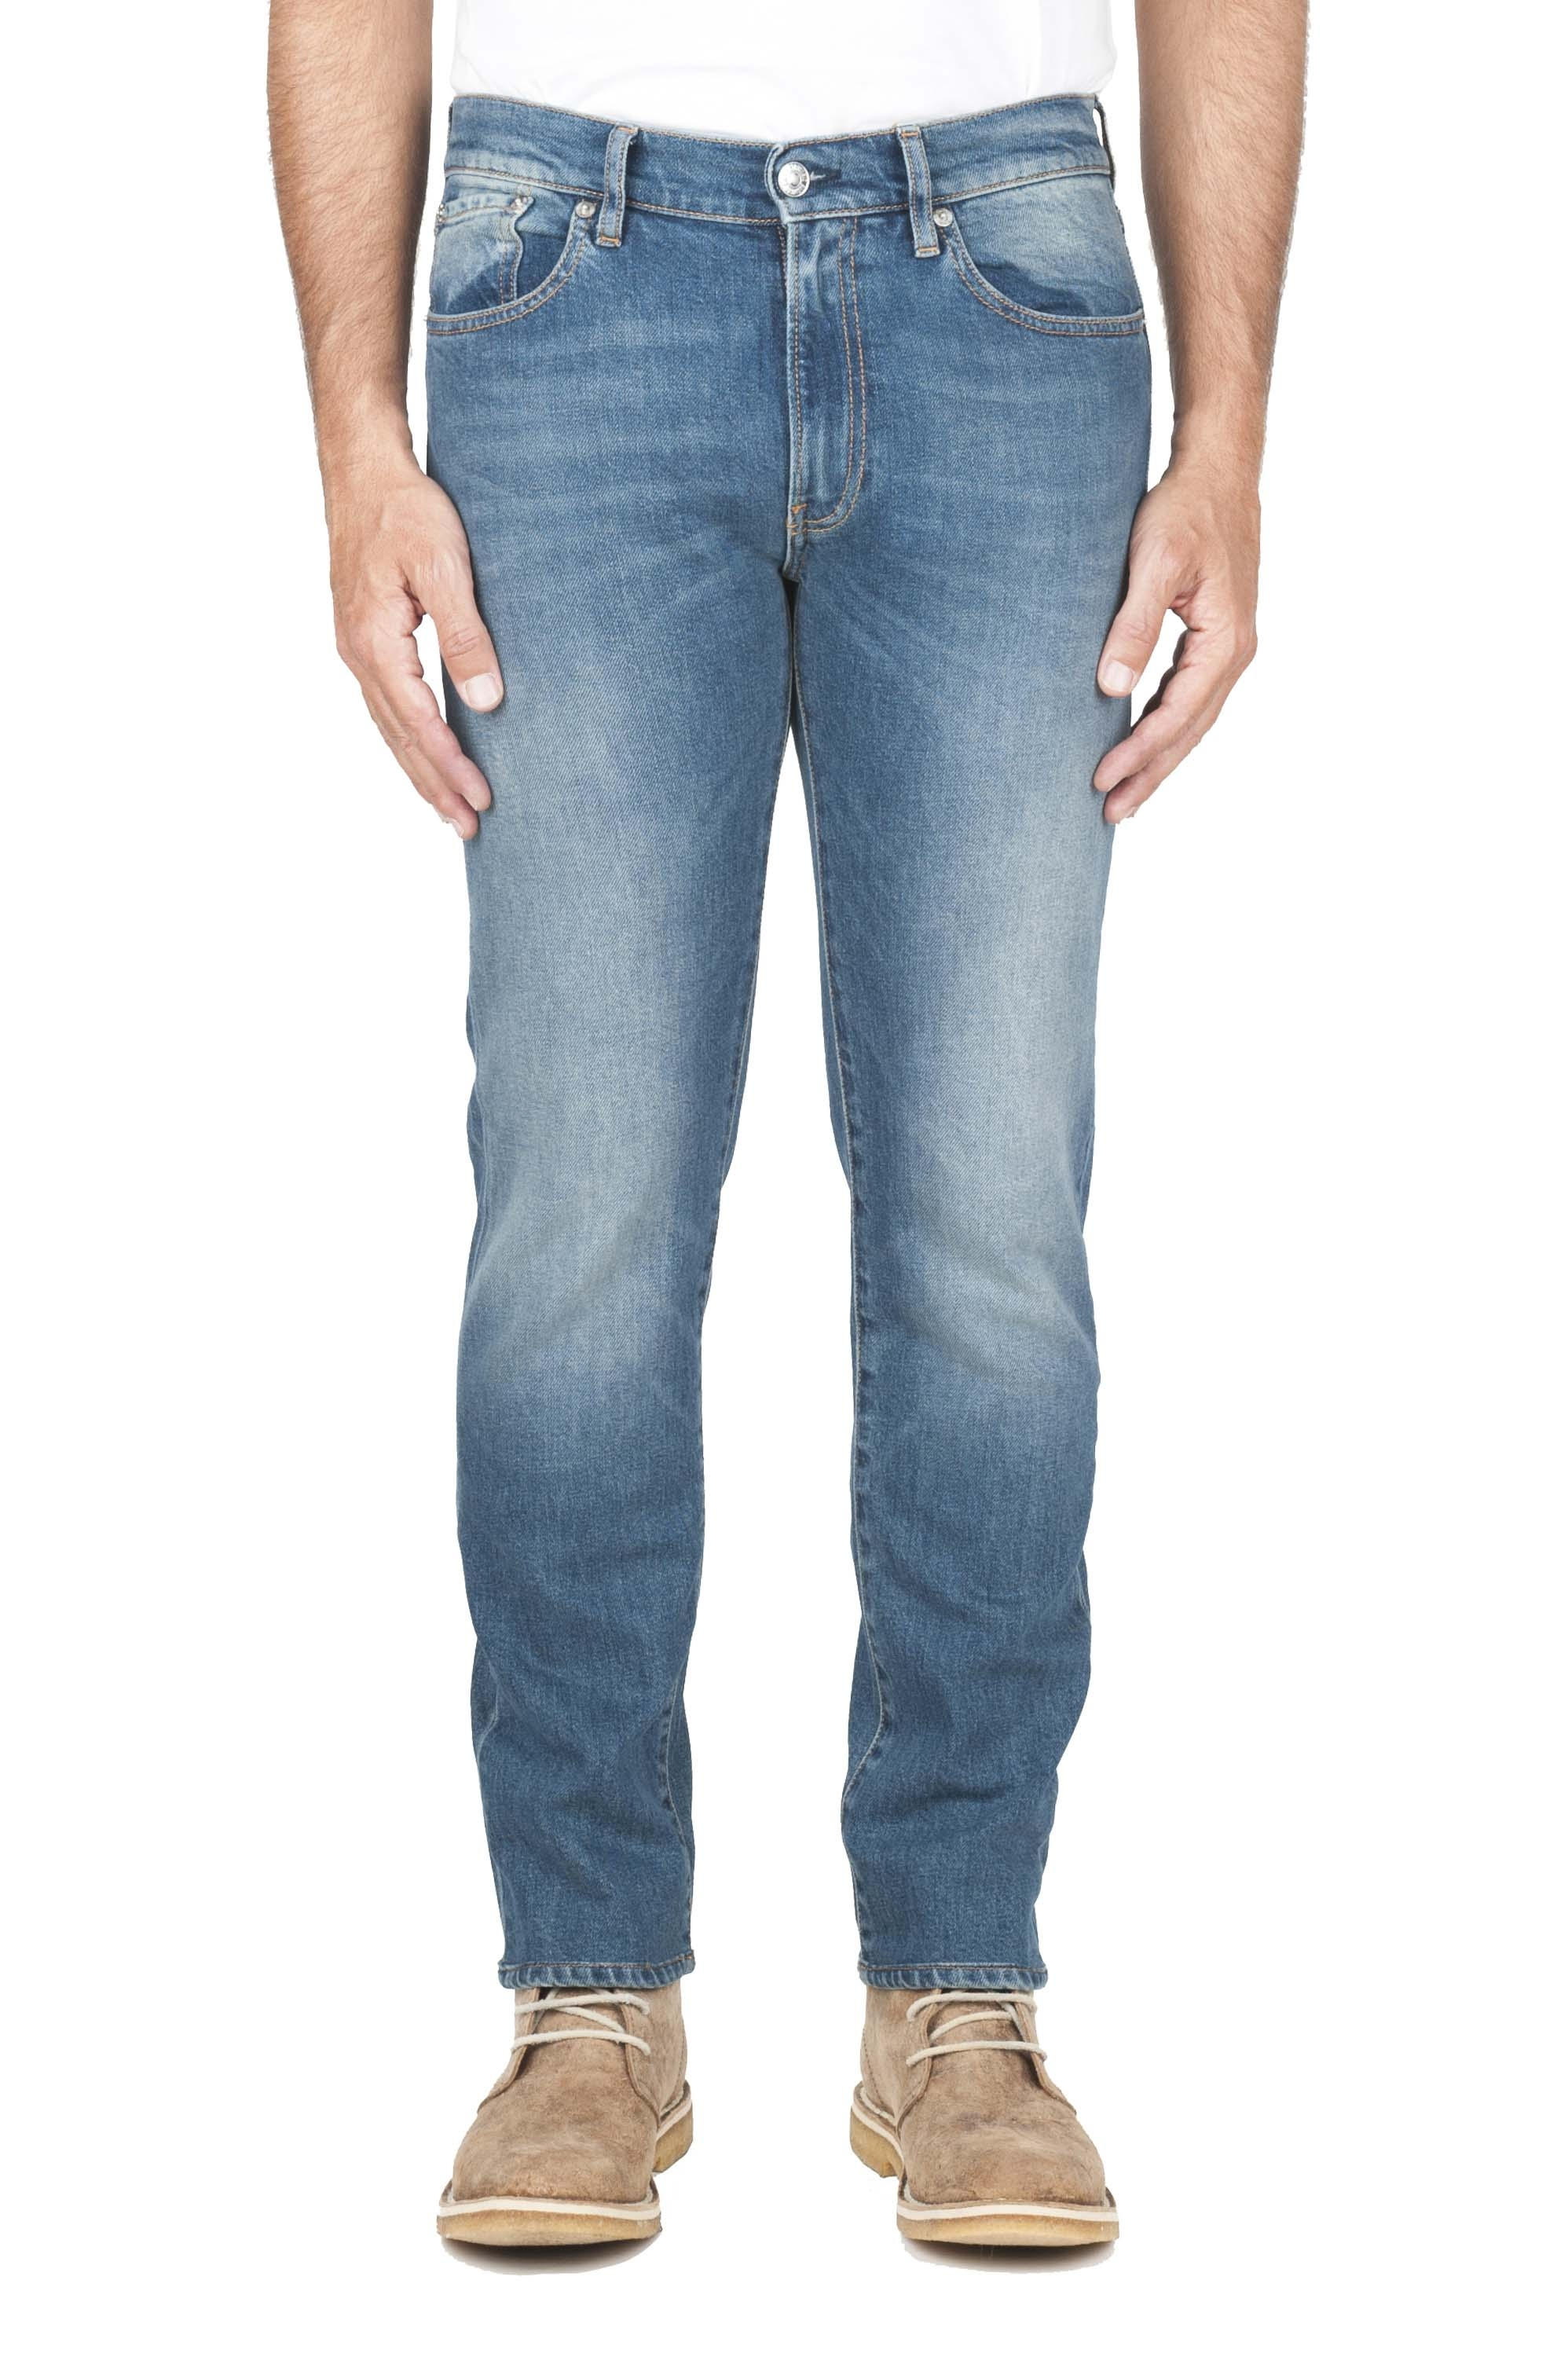 SBU 01450_19AW Pure indigo dyed stone bleached stretch cotton blue jeans 01